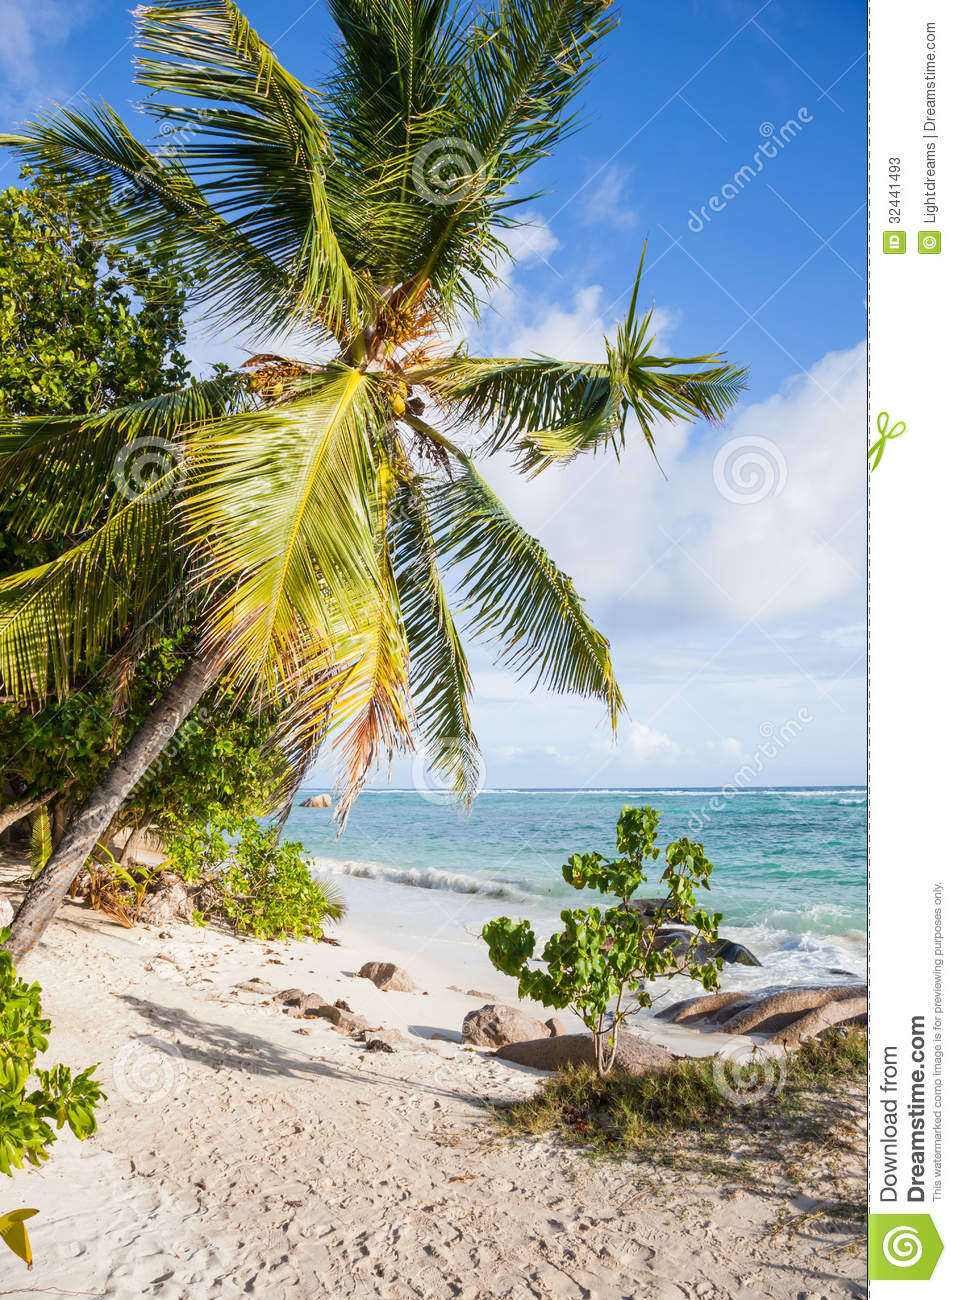 Beach With Palms Stock Image. Image Of Leaf, Sand, Lagoon